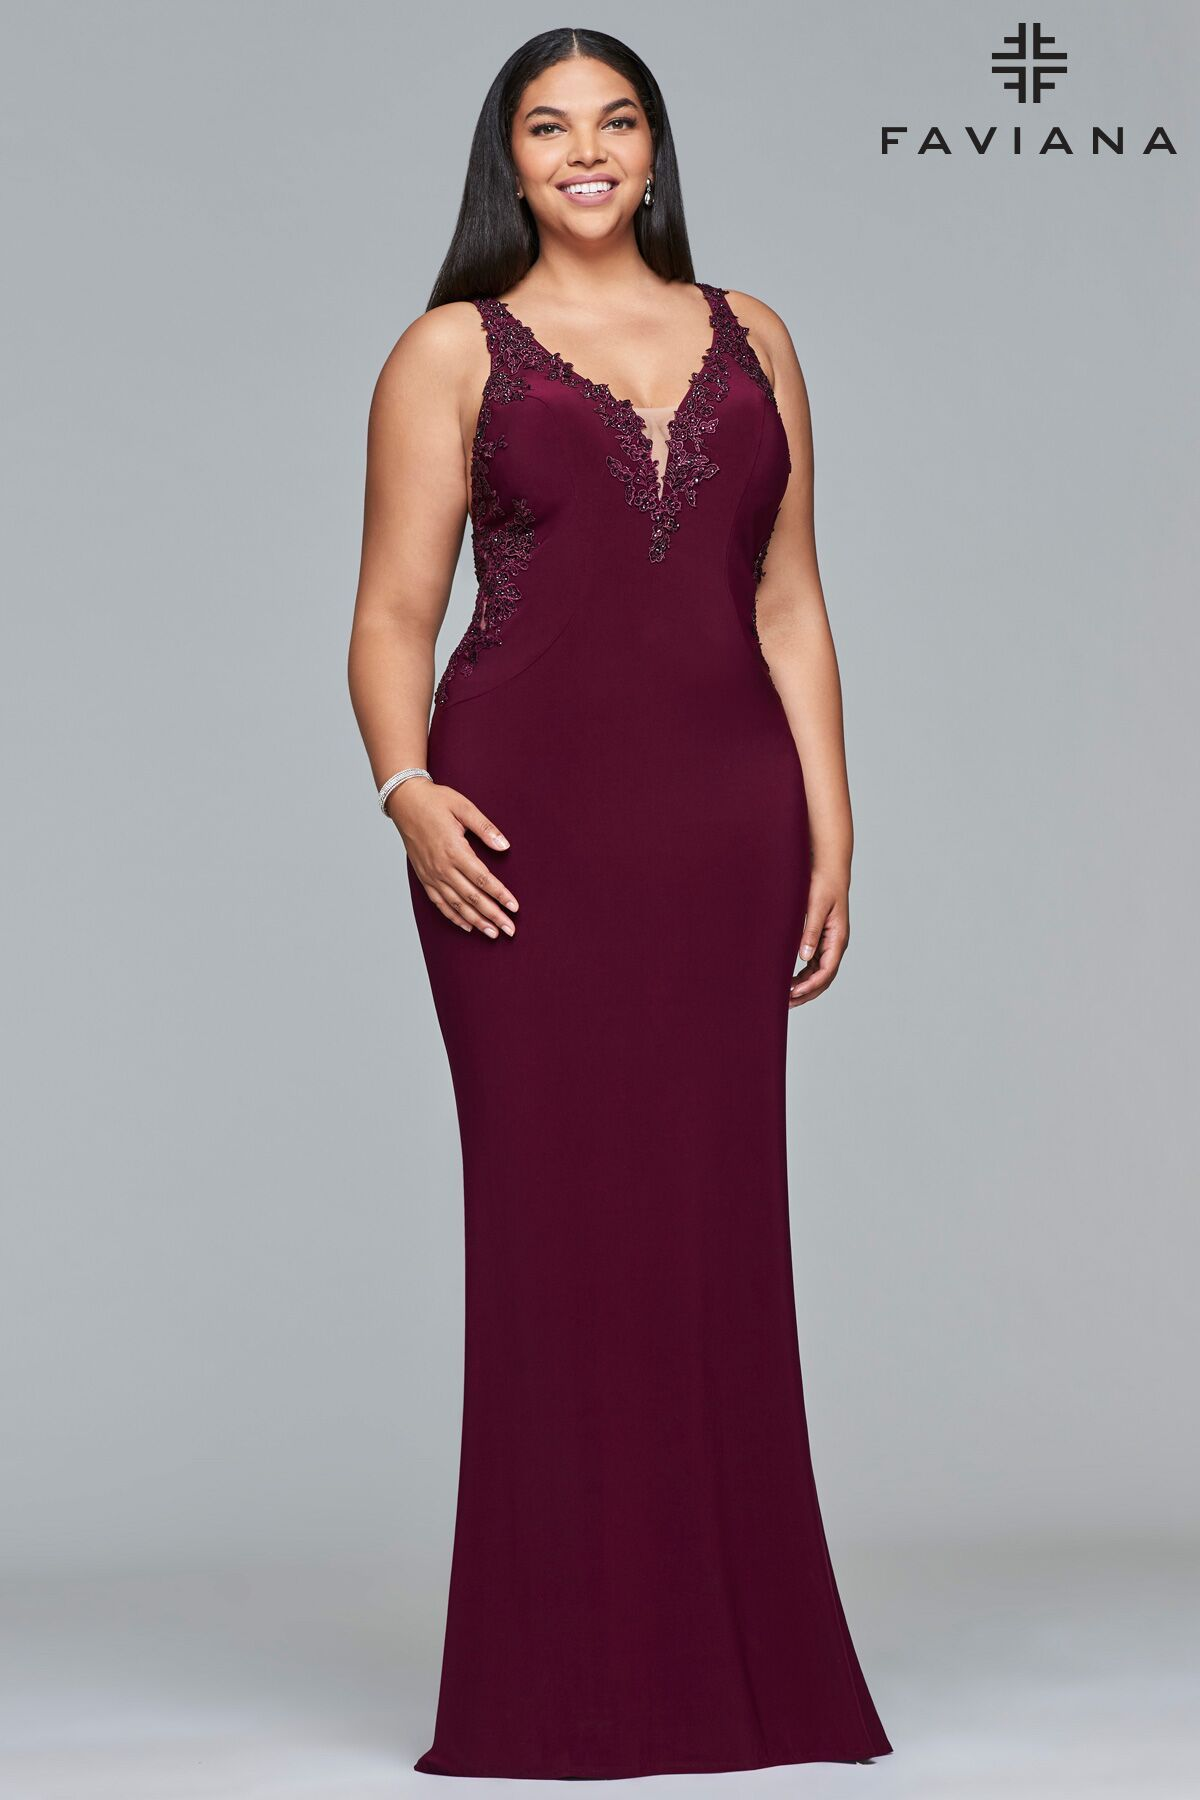 9ecae02c144 Faviana style 9432 is simple and  elegant. This  stretch  jersey  dress  features a v-neck with  lace  applique and a key hole back.